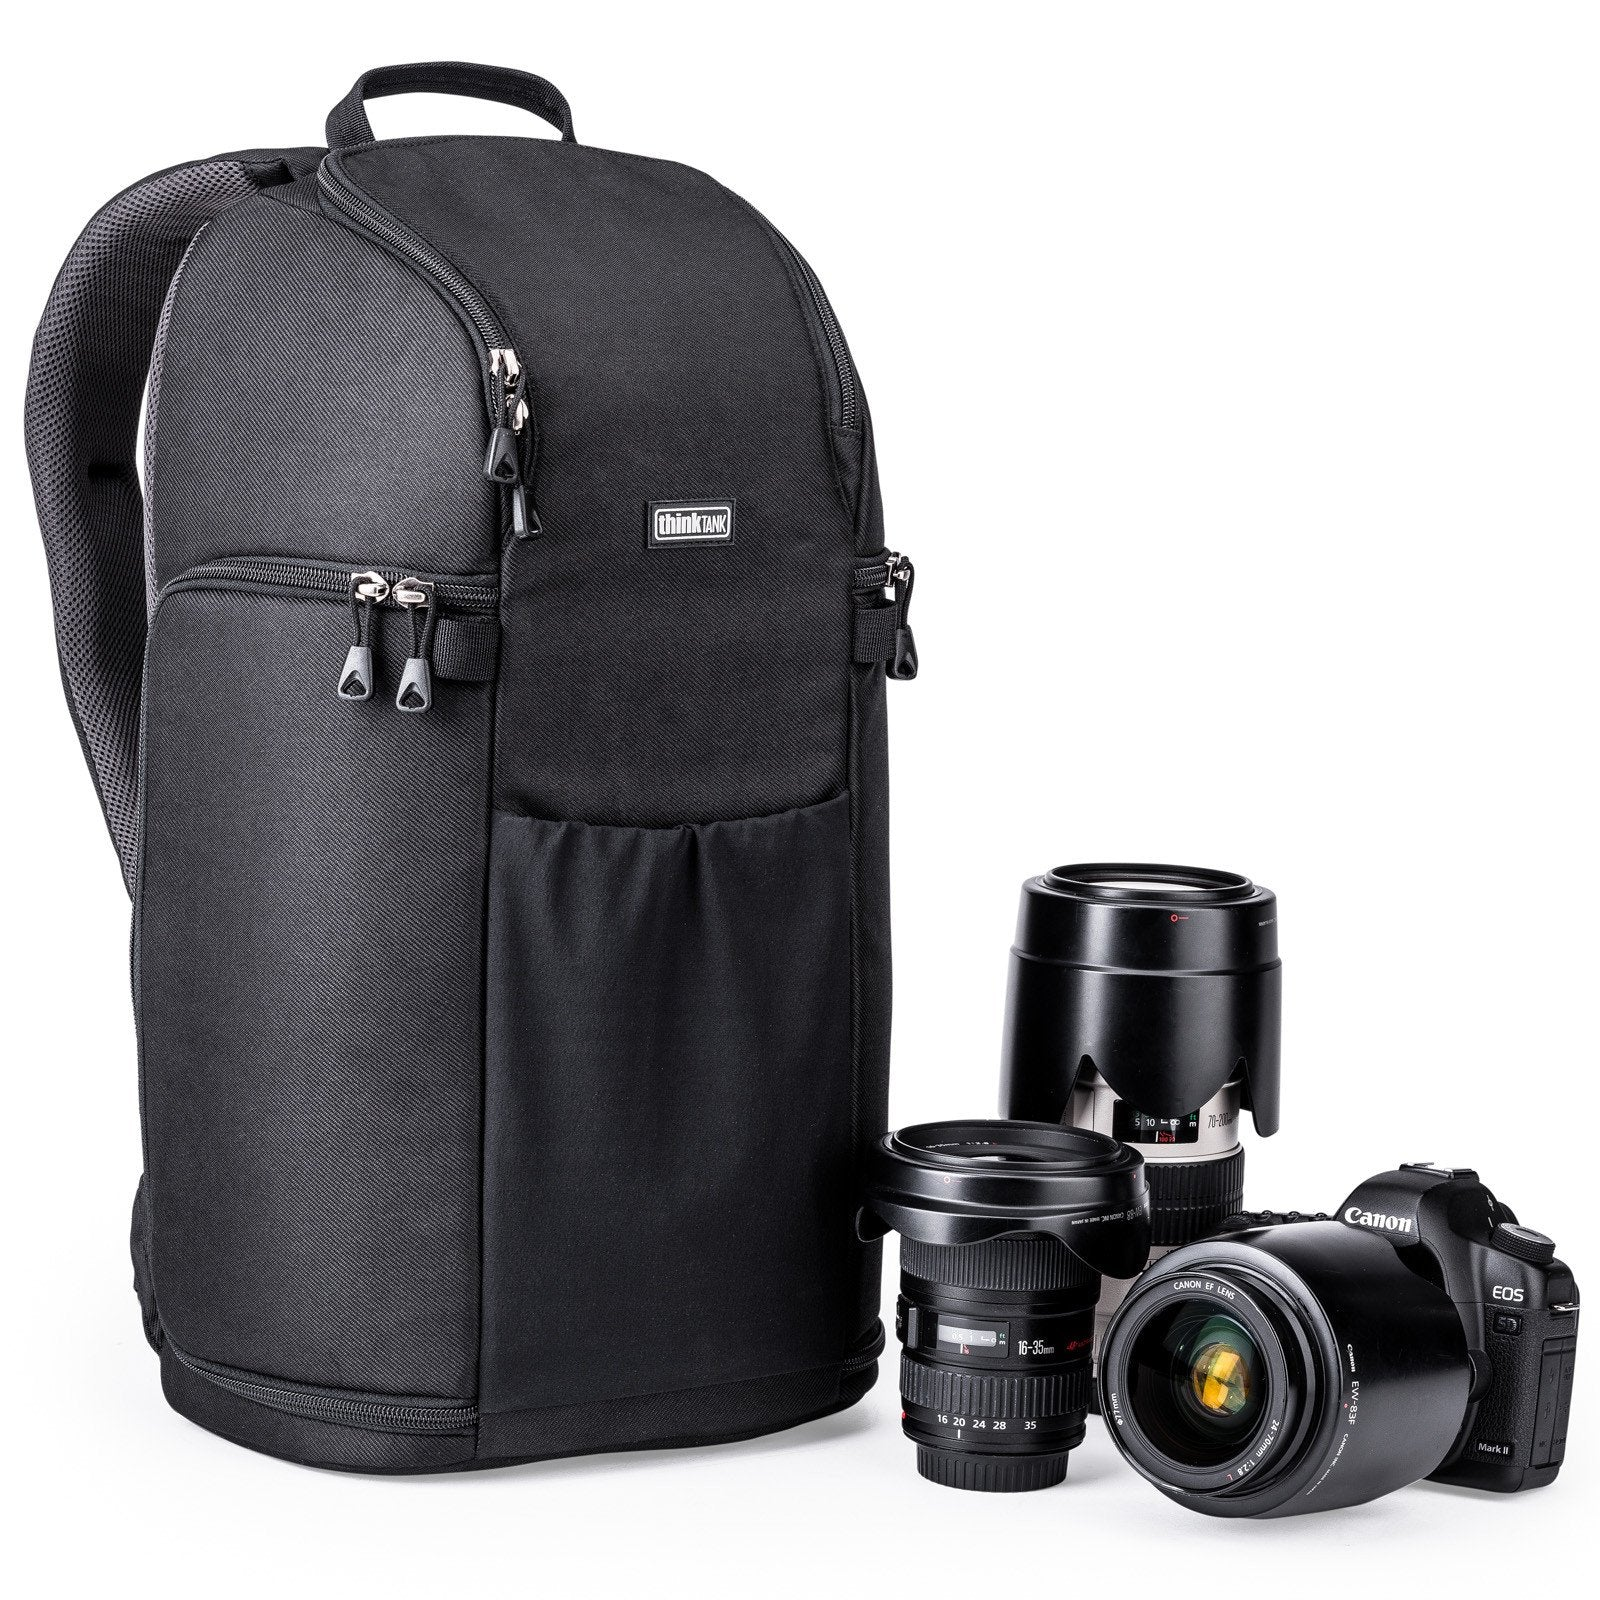 ThinkTank Trifecta 10 DSLR Backpack